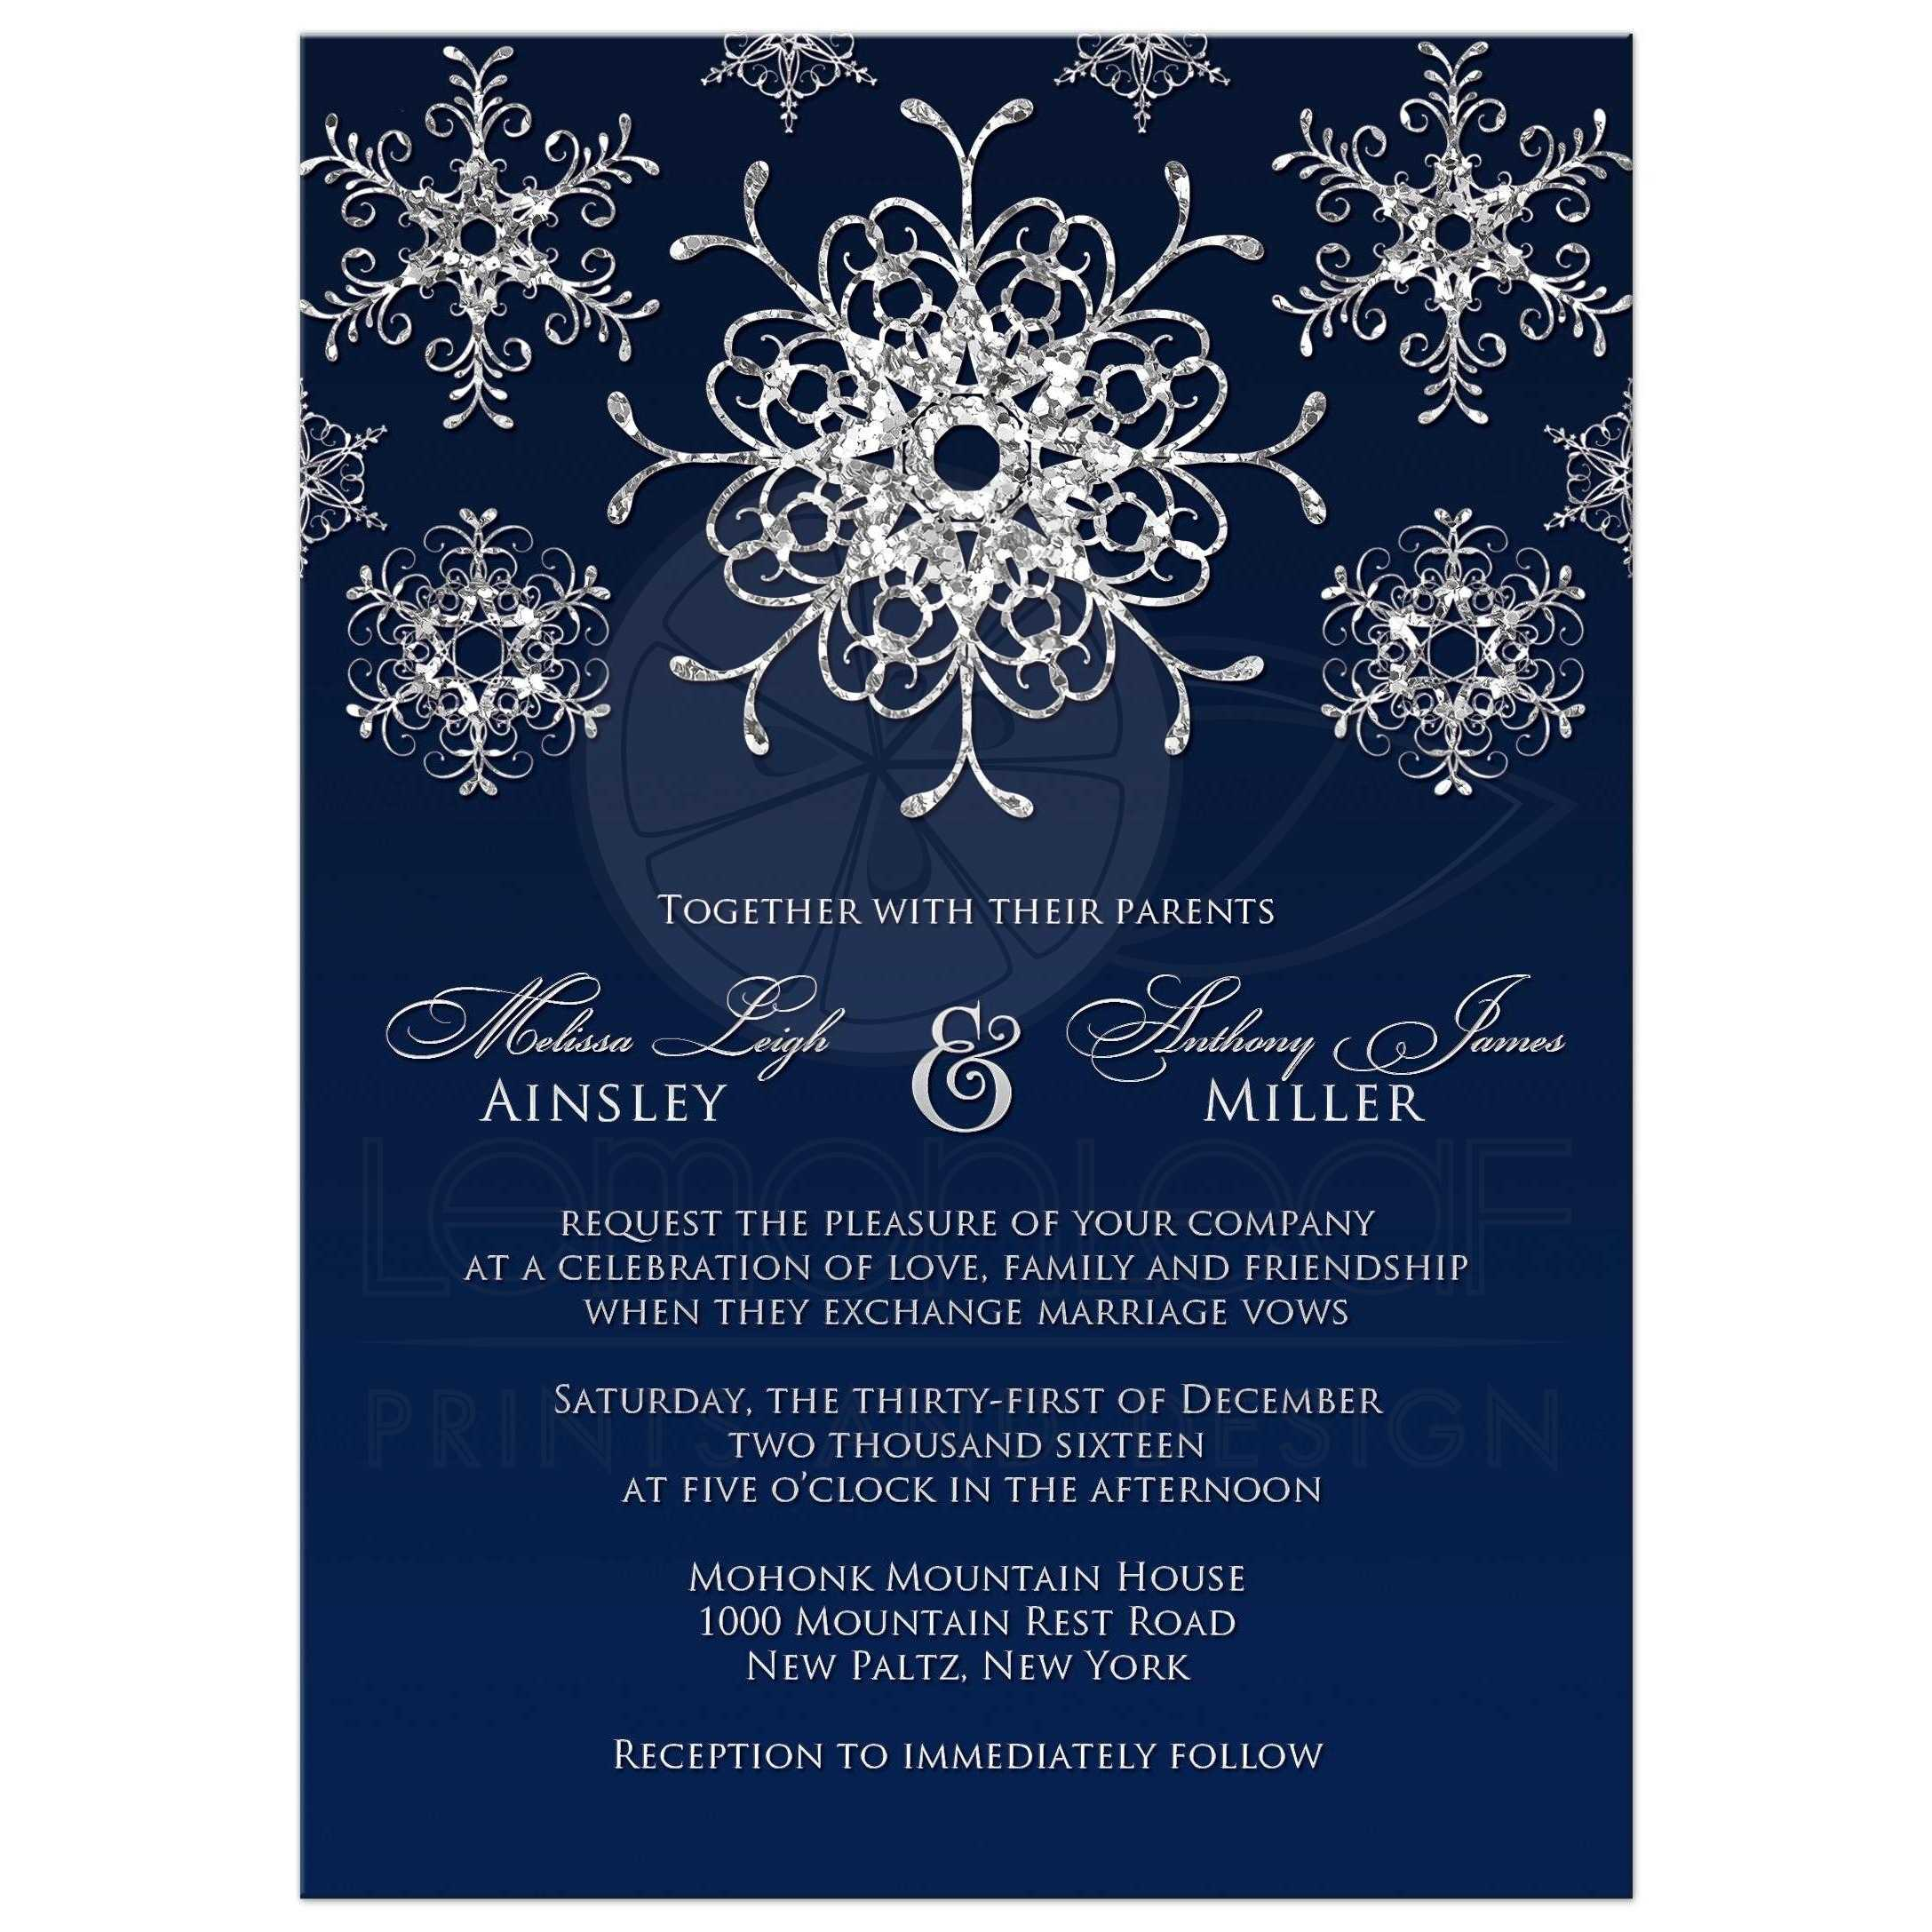 Attractive Best Winter Wonderland Wedding Invitation In Navy Blue And Silver  Snowflakes And Glitter ...